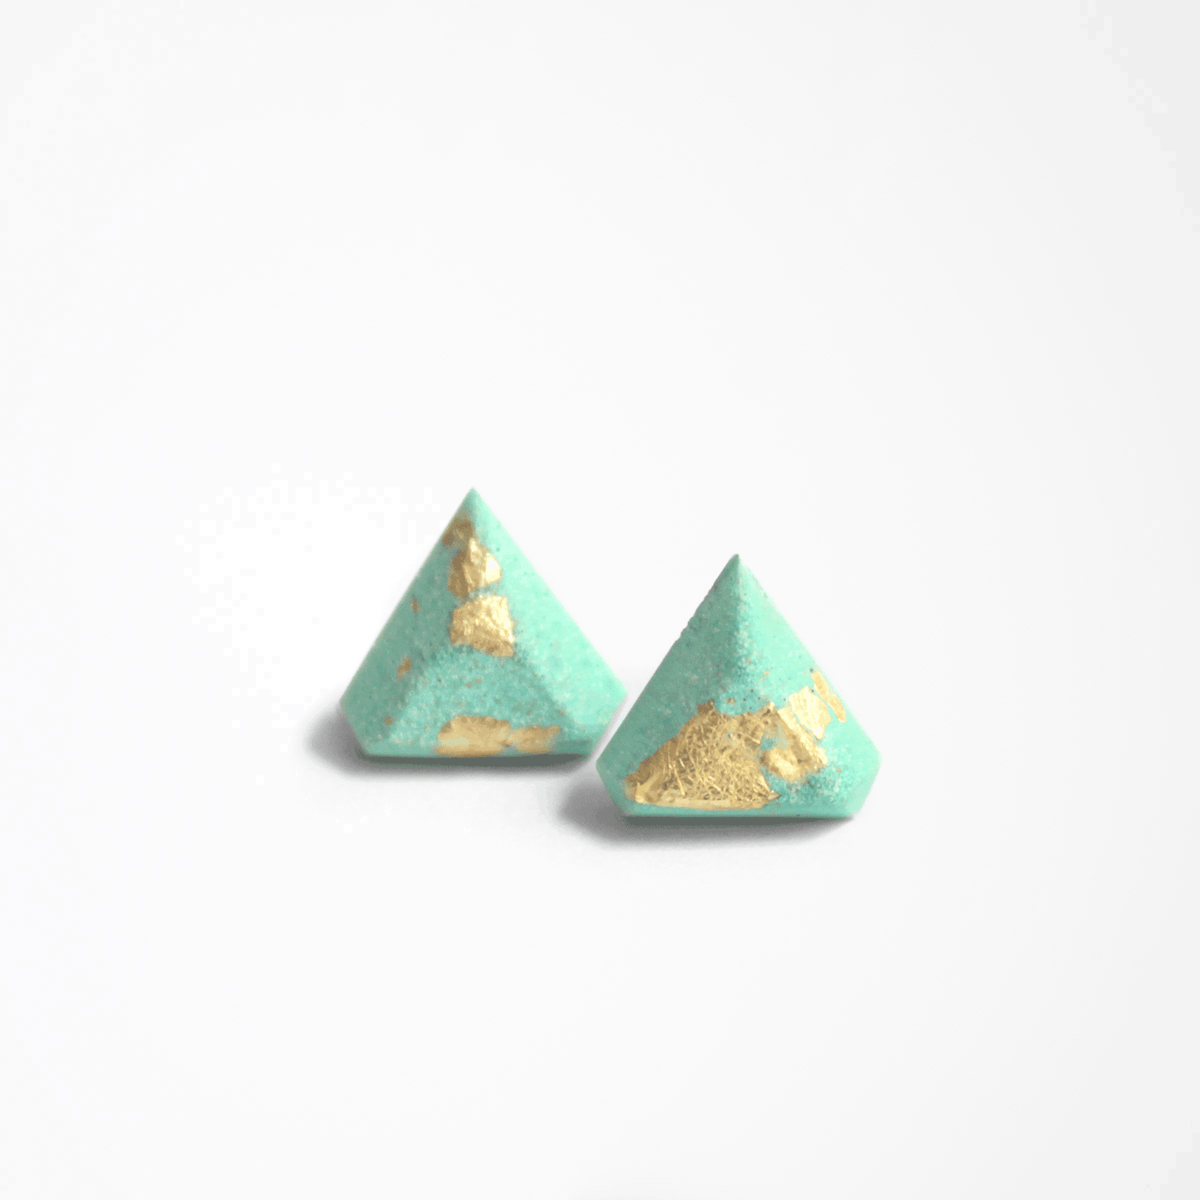 Mint Diamant Stud Earrings - Handmade in Eco-friendly Resin & Gold Leaf - Sold by Chic & Basta